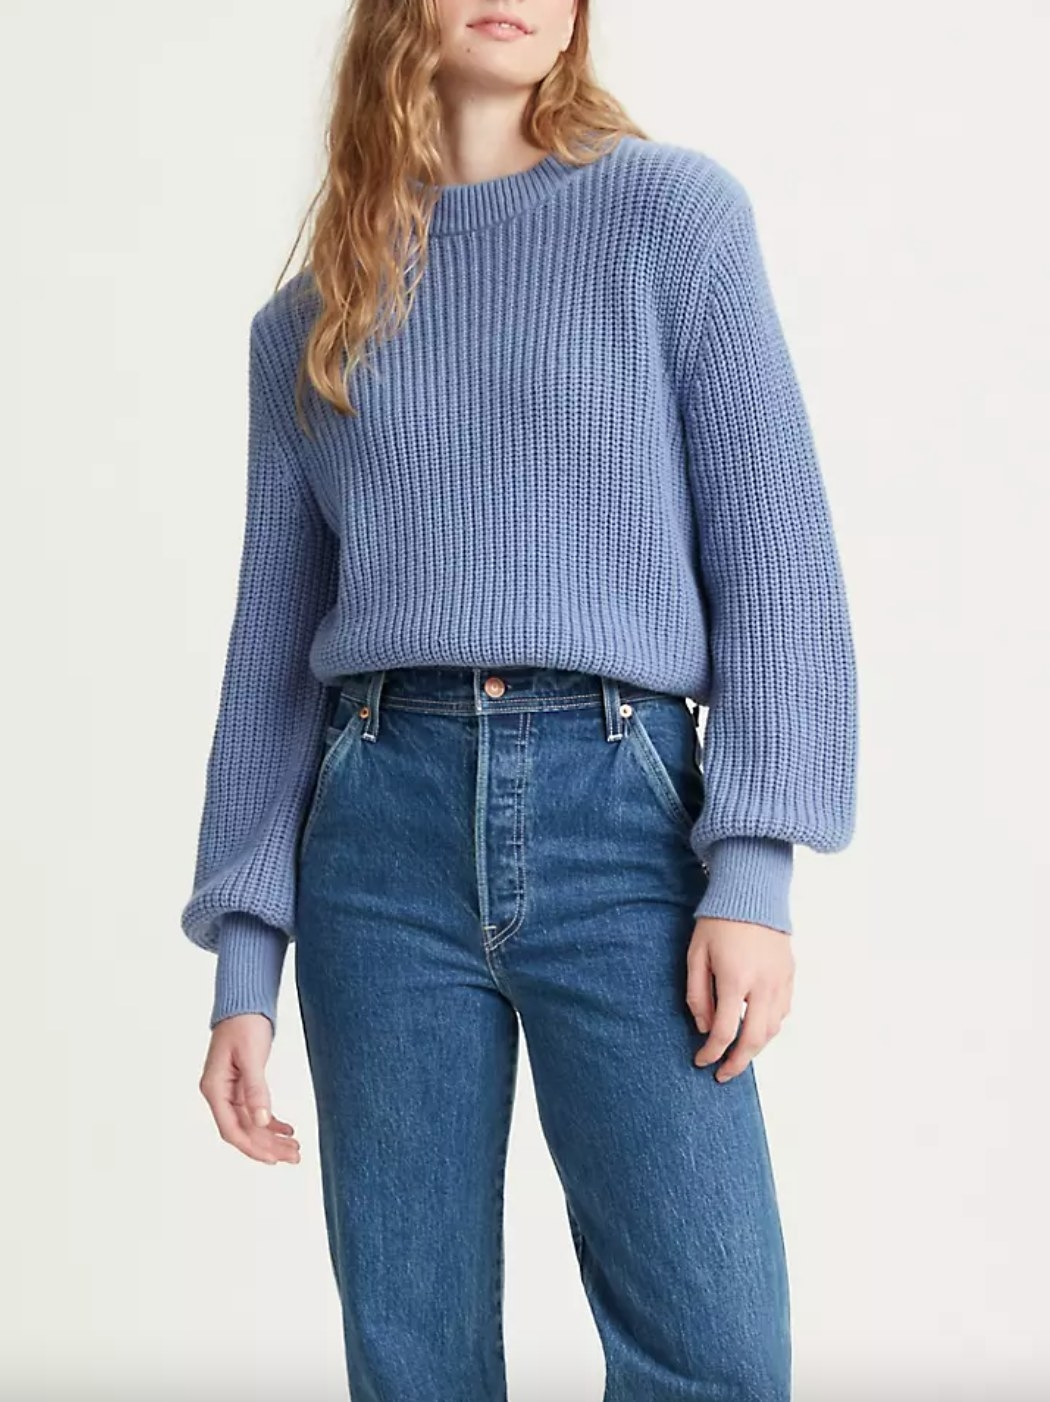 The knit sweater in colony blue